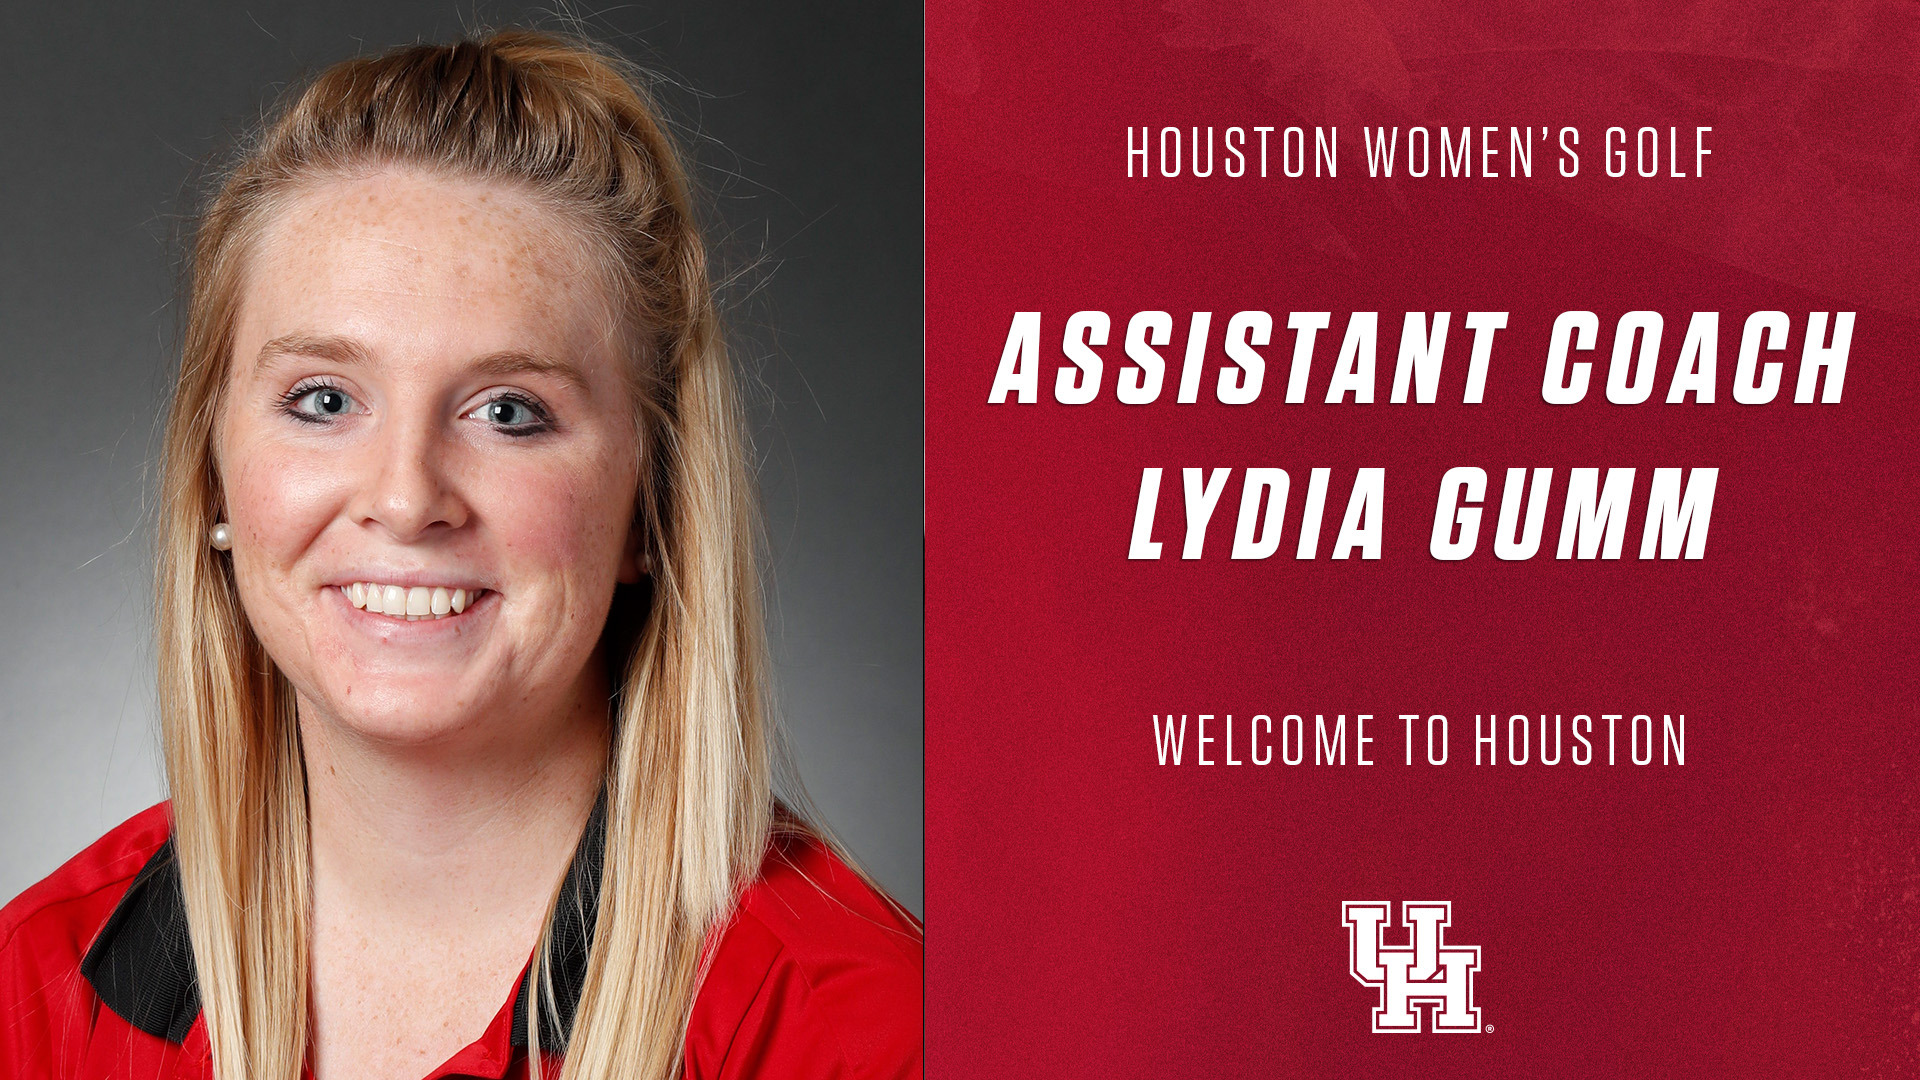 b06922a62d HOUSTON – Former Florida State standout Lydia Gumm will join the University  of Houston Women's Golf Program as an assistant coach beginning with the  2018-19 ...